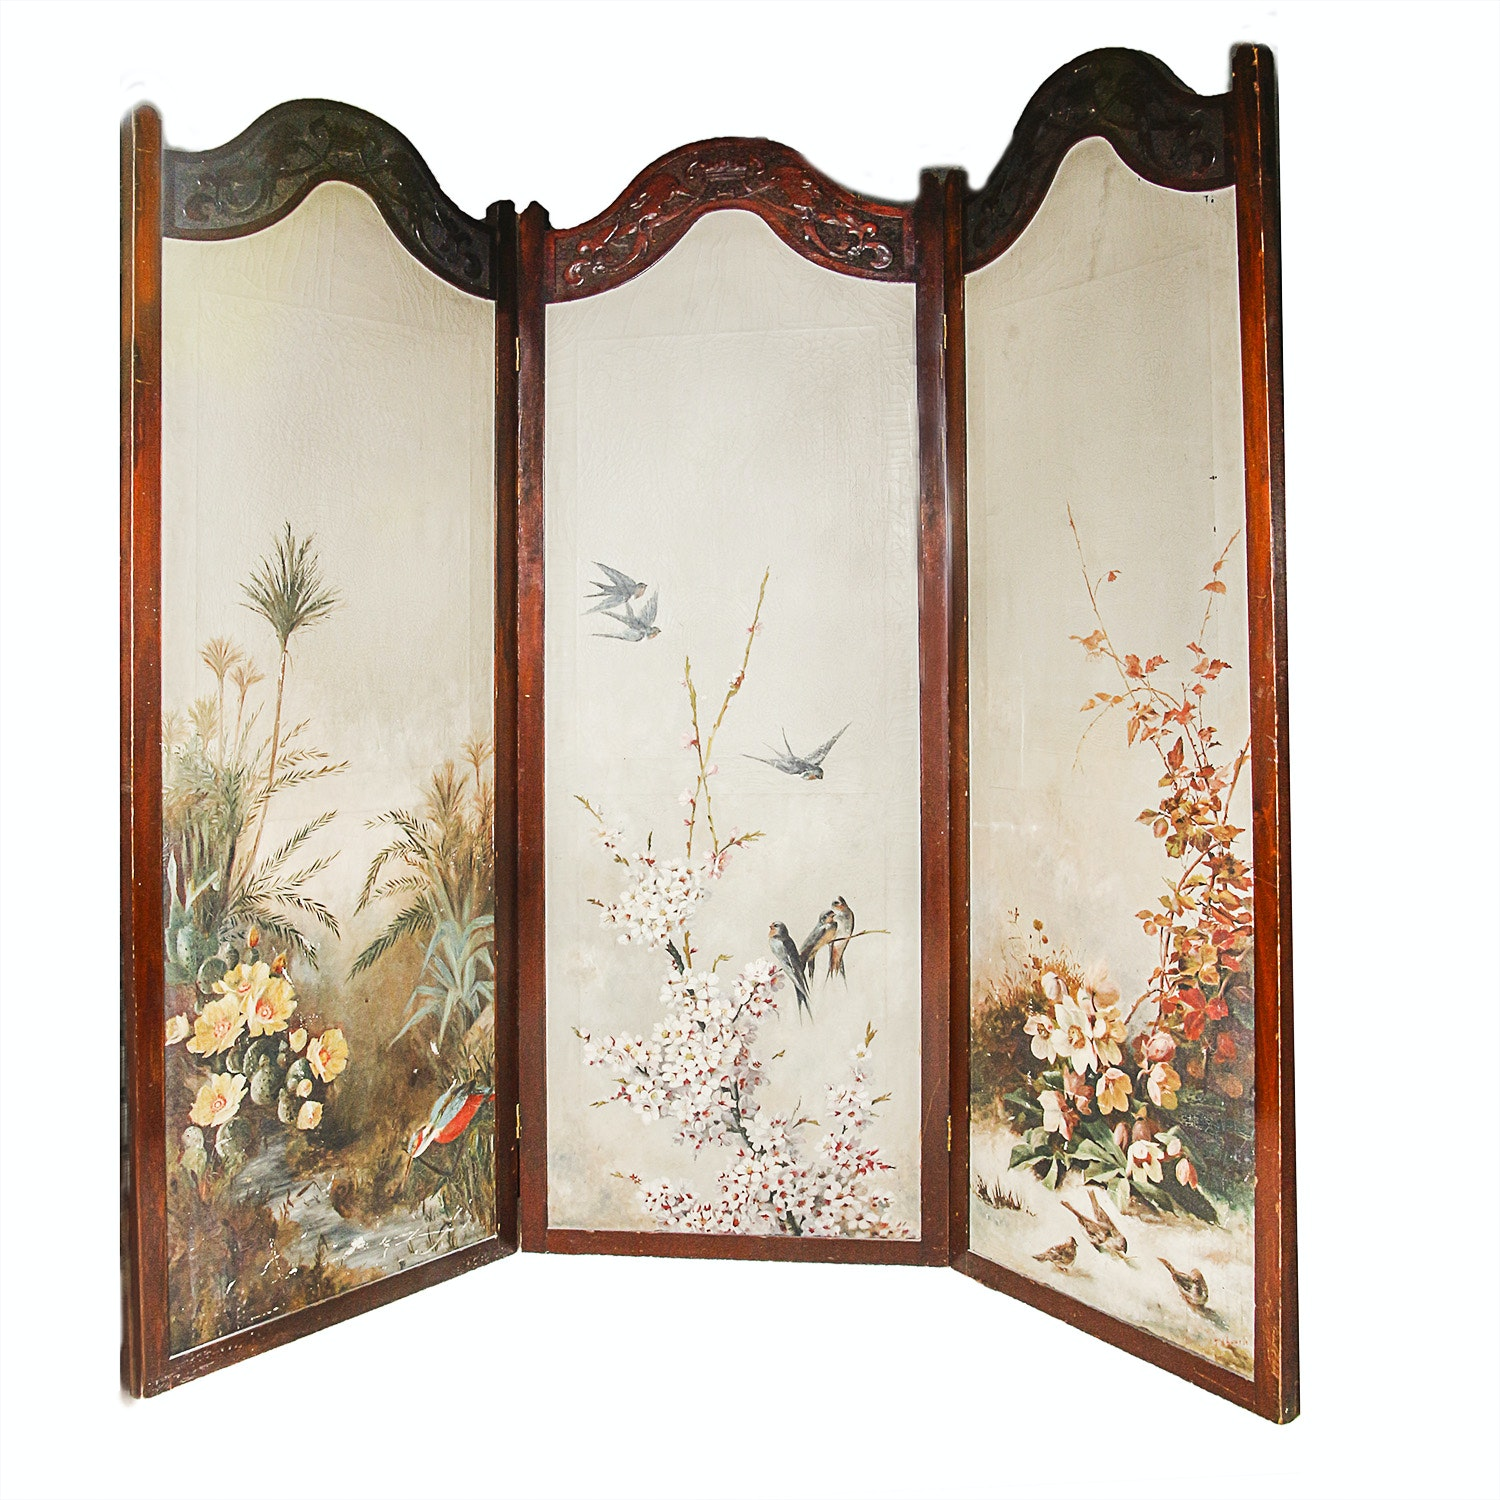 Vintage Decorative Screens Room Dividers and Room Partitions in Art